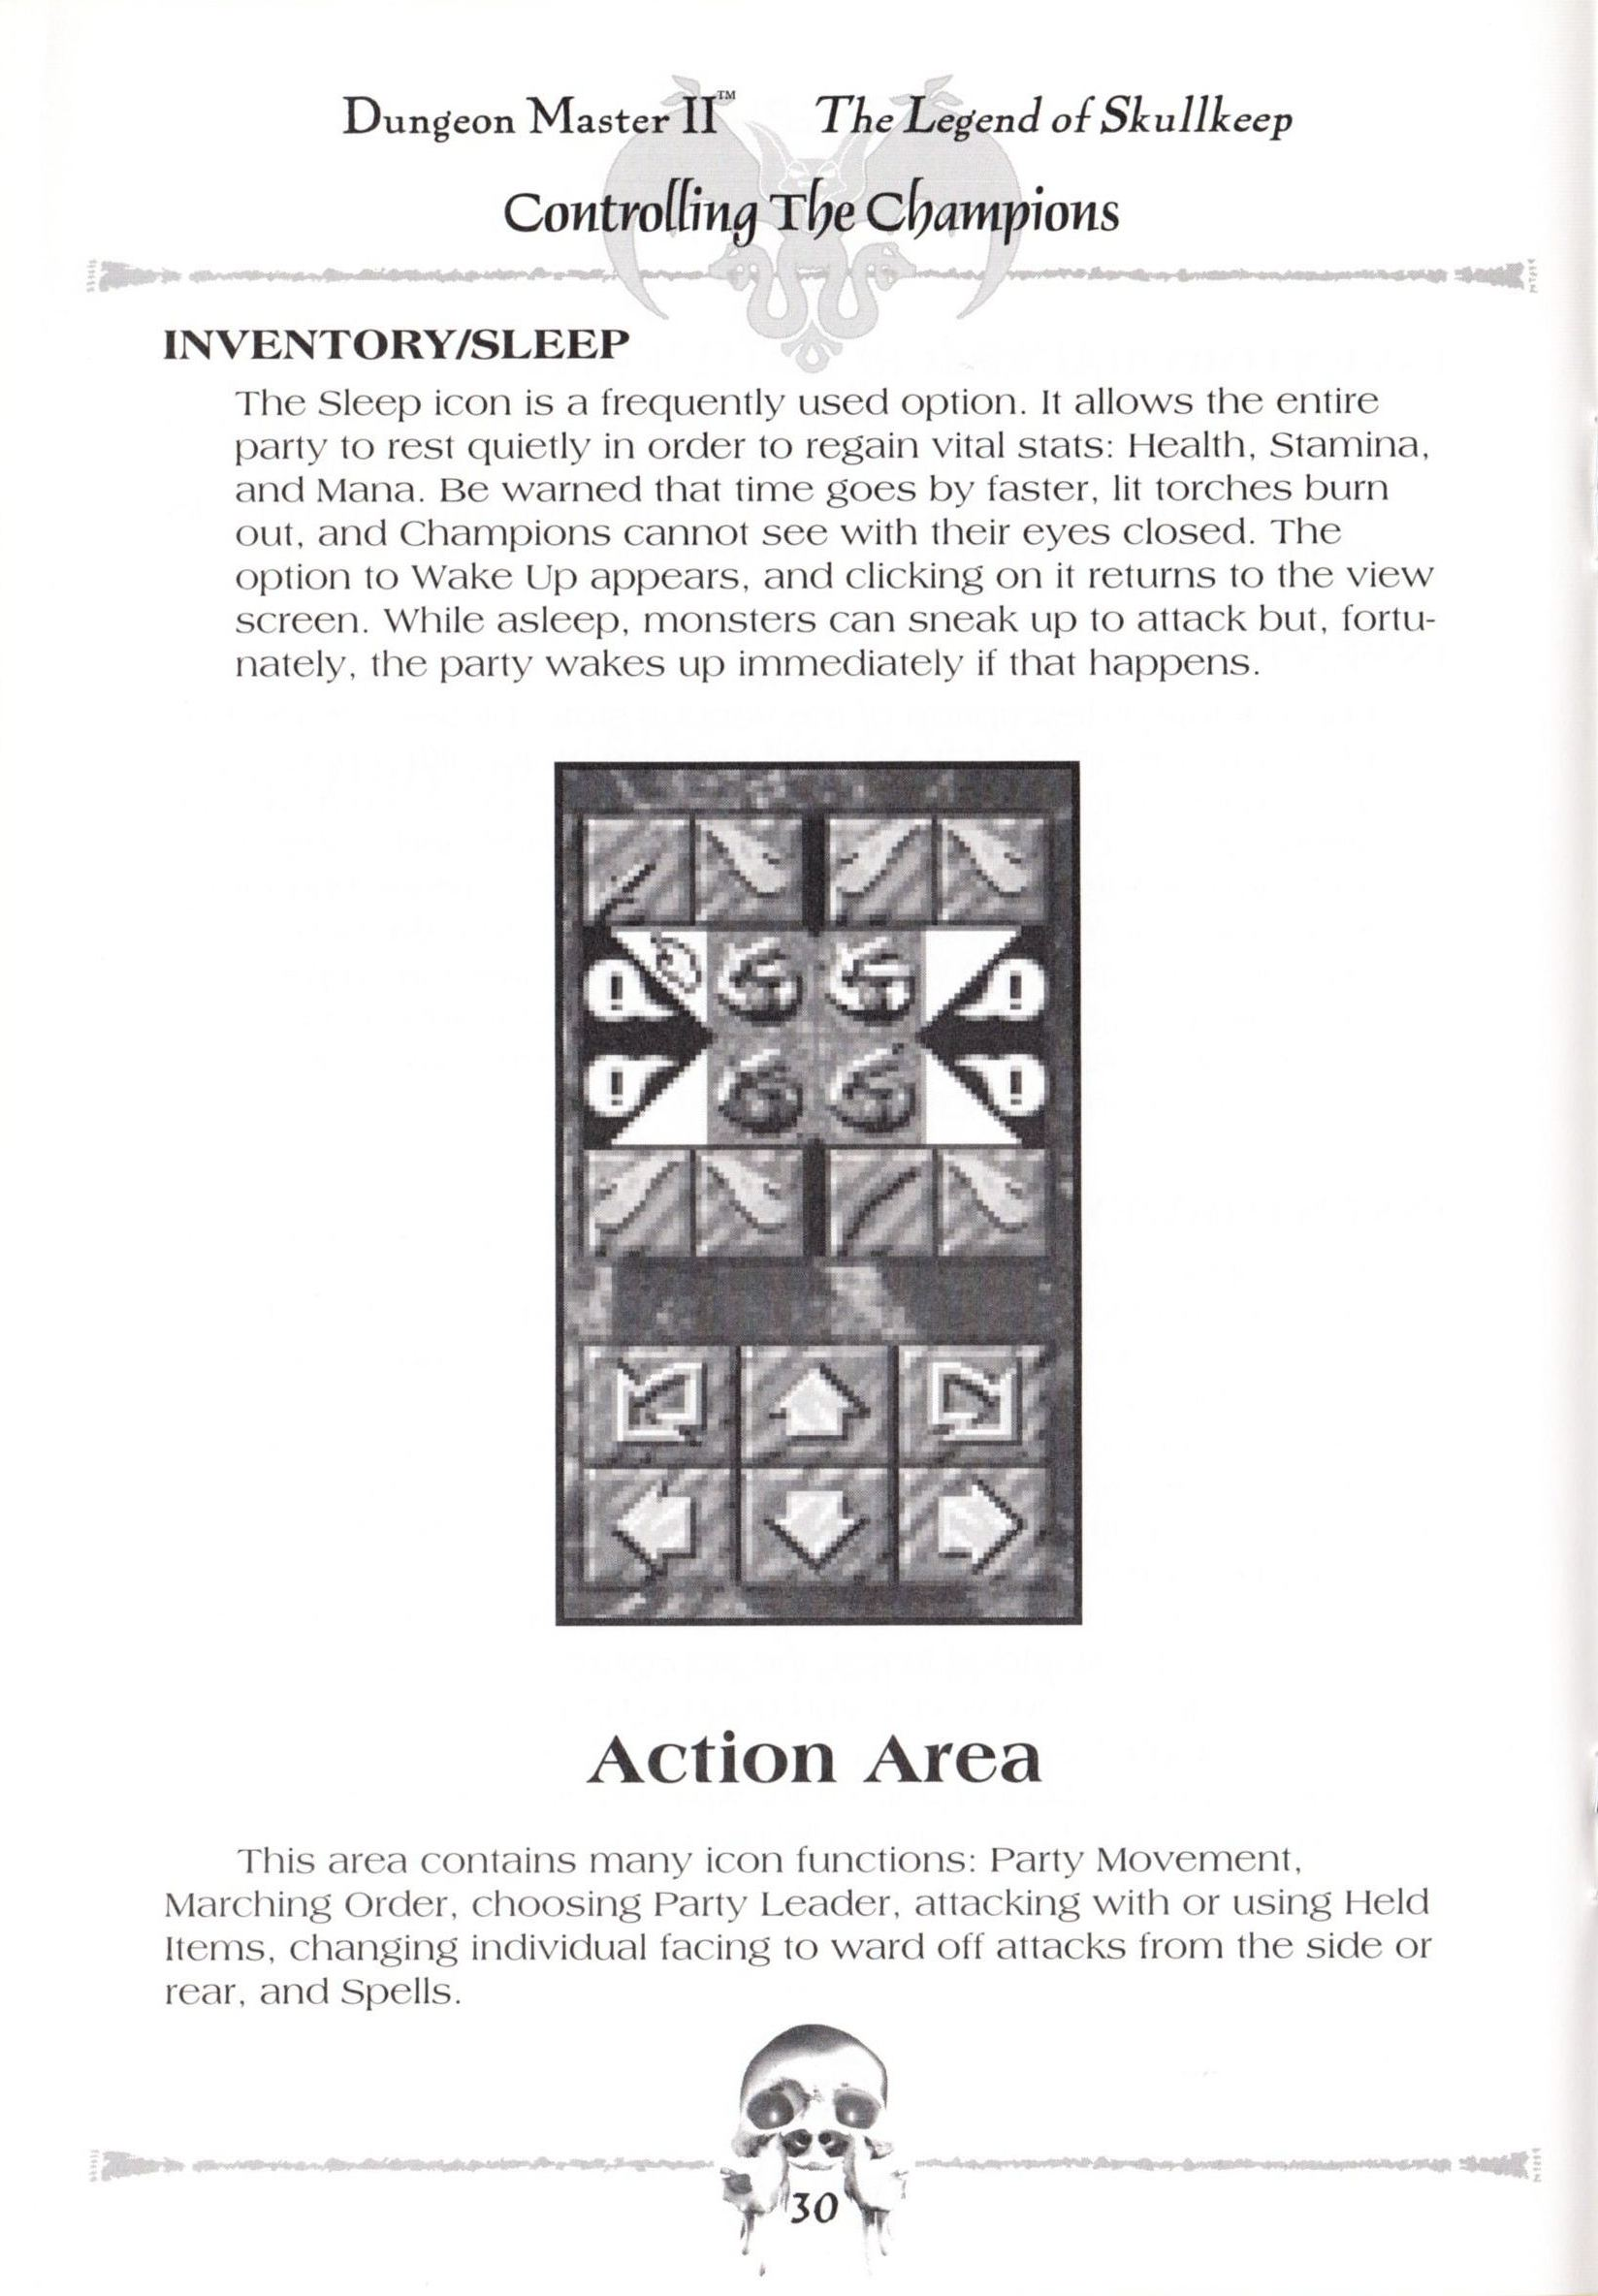 Game - Dungeon Master II - US - Macintosh - Manual - Page 032 - Scan